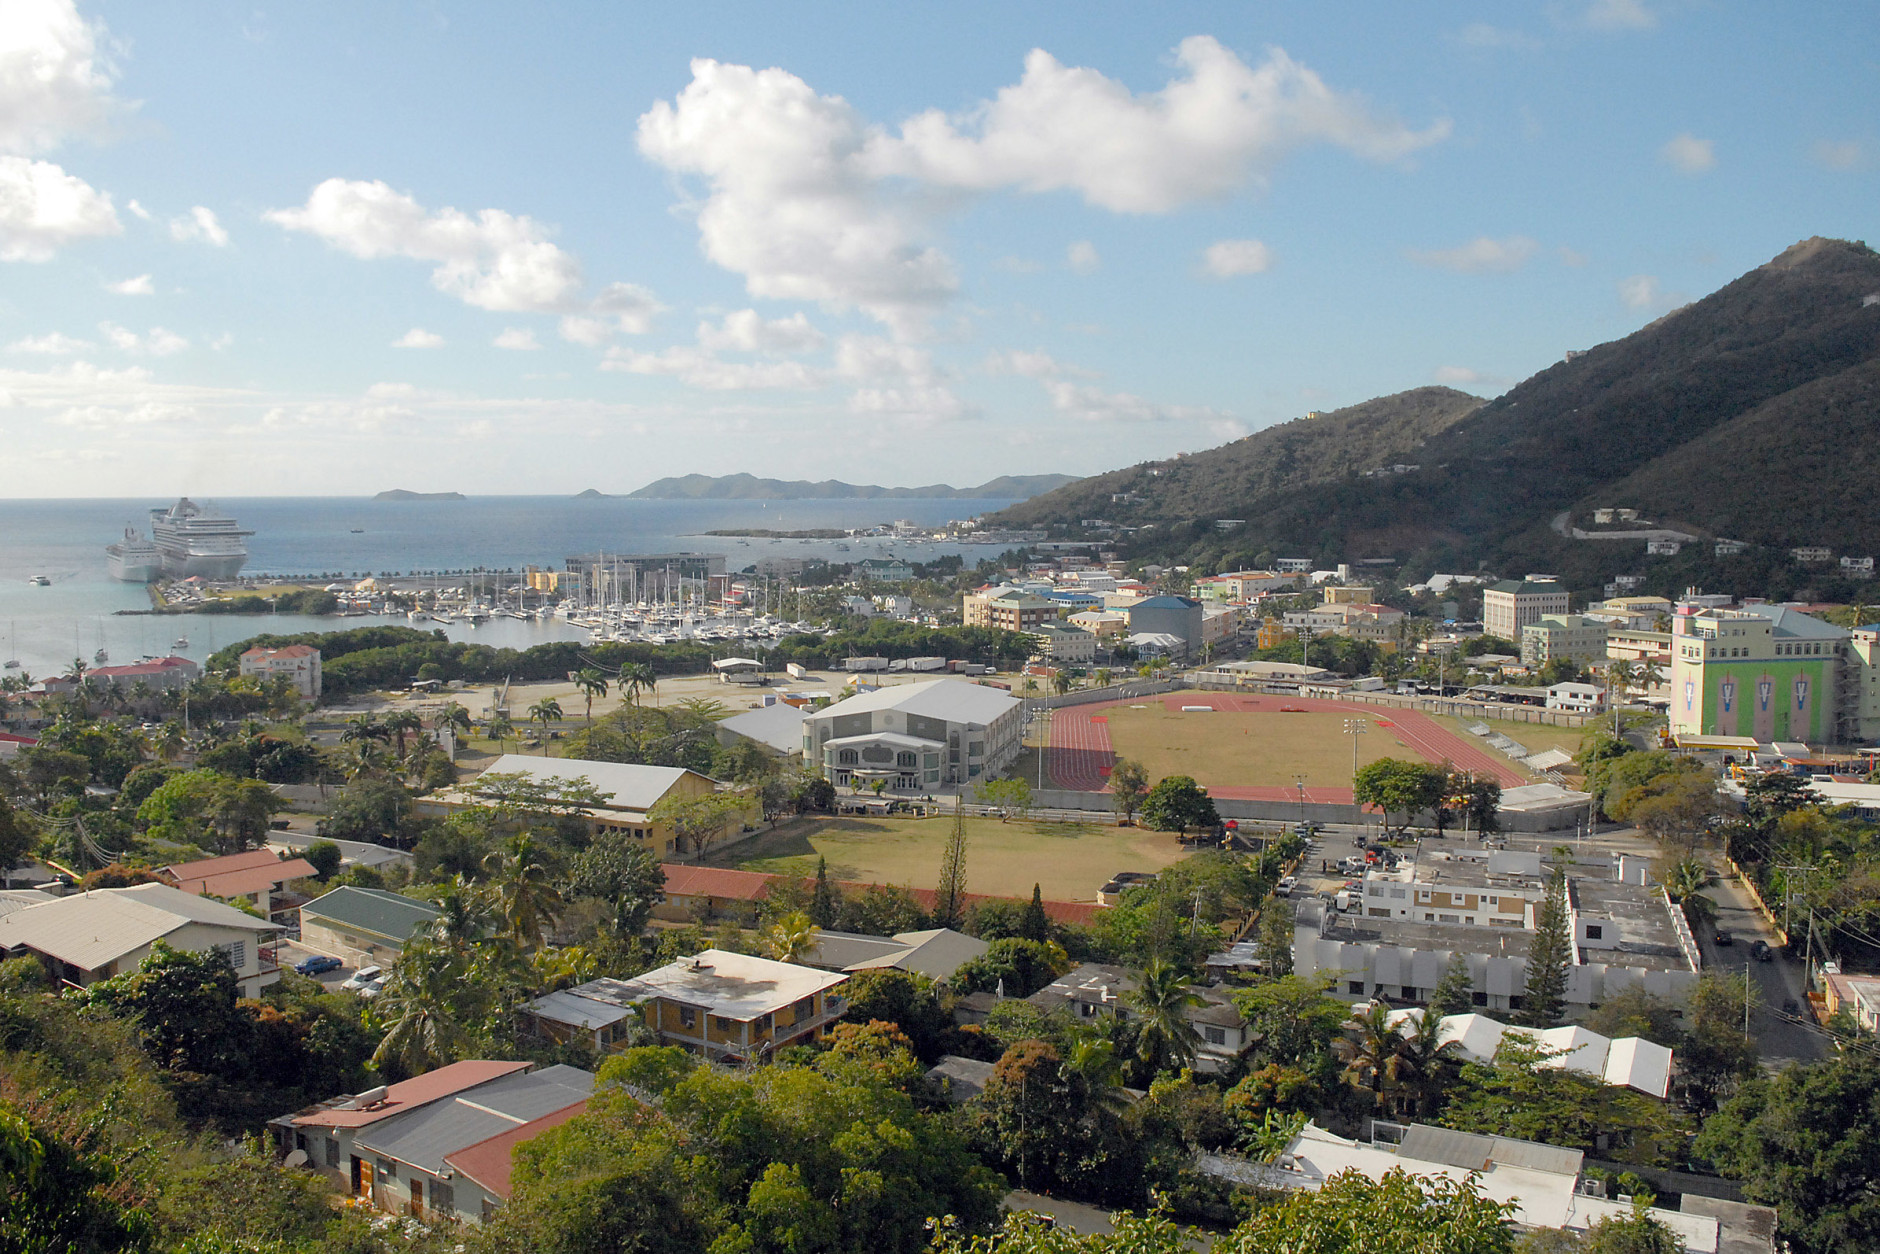 FILE - This April 3, 2009 file photo shows a general view of Road Town, Tortola in the British Virgin Islands. A thriving financial services industry that evolved over the last 30 years, the British Virgin Islands has come under scrutiny like never before thanks to the leak of confidential documents from a Panama-based law firm that specializes in offshore finance. (AP Photo/Todd VanSickle, File)